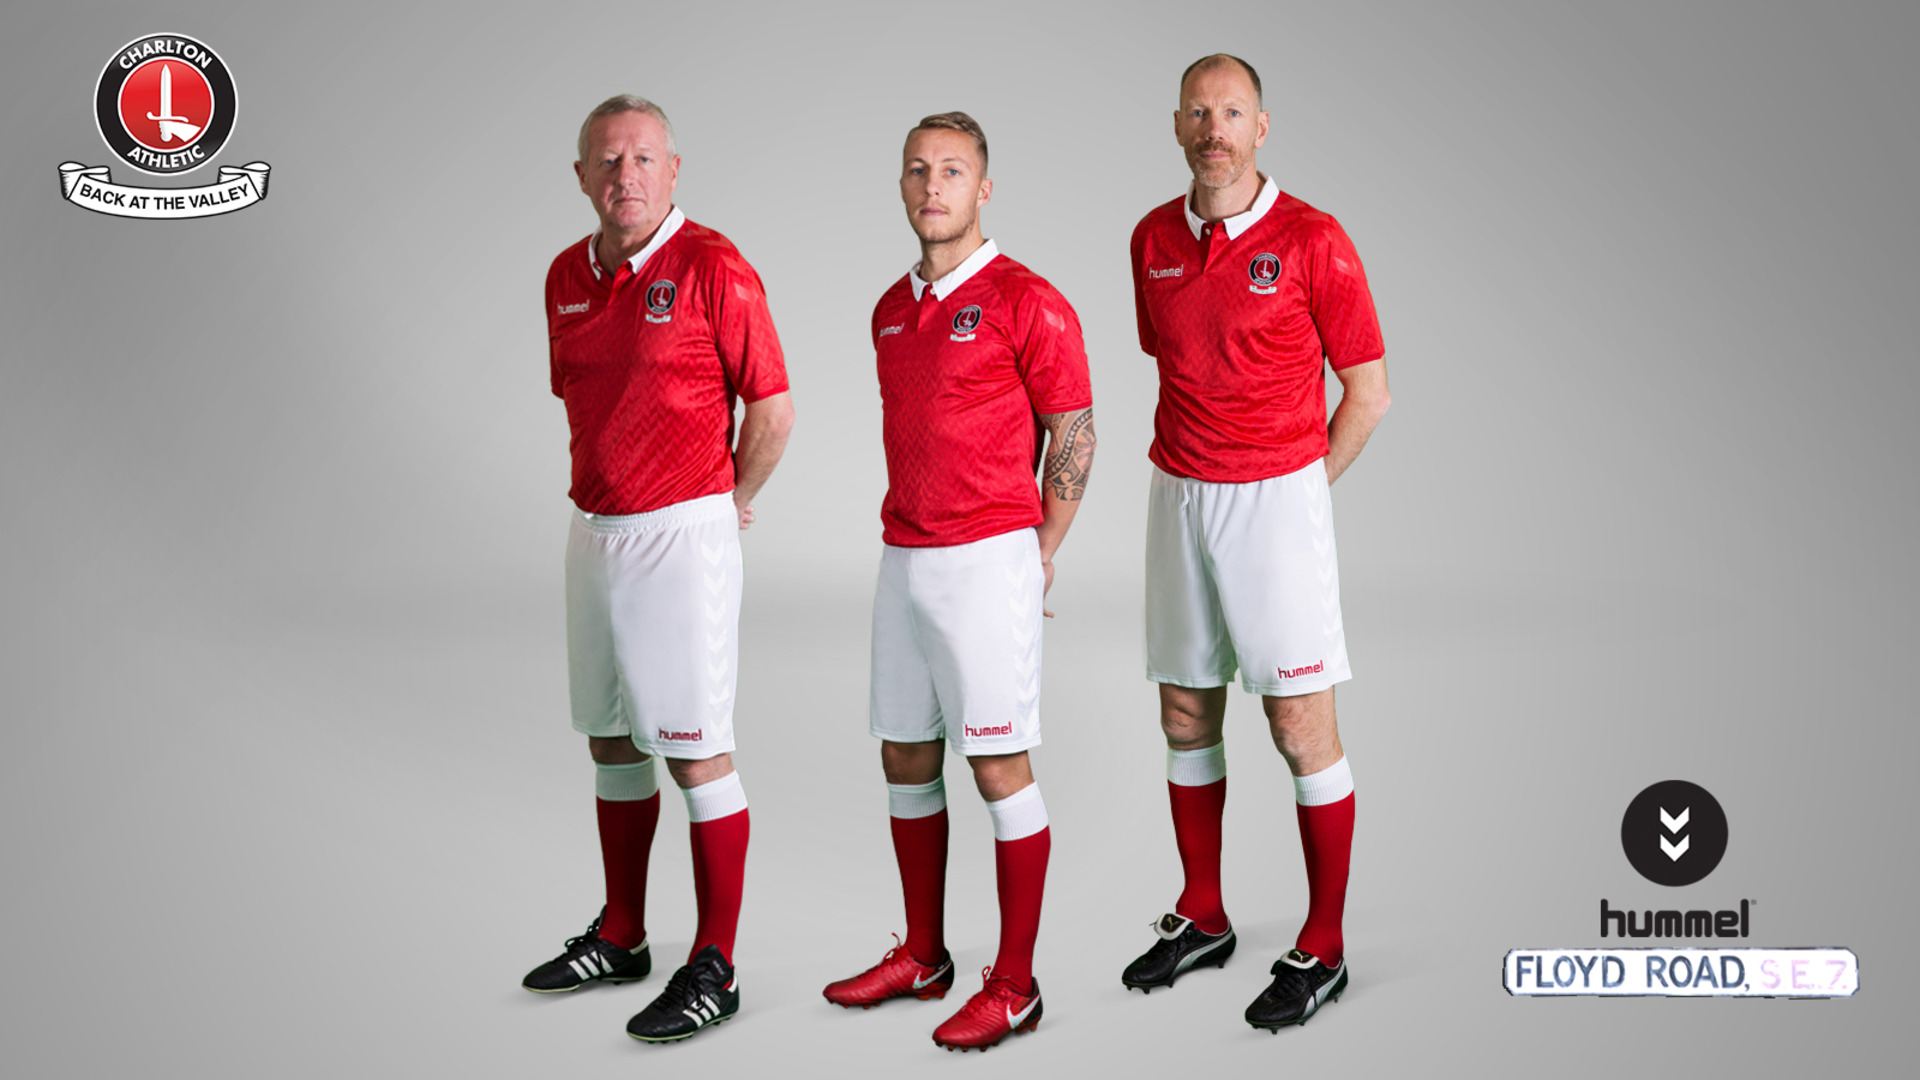 Back at The Valley anniversary kit unveiled